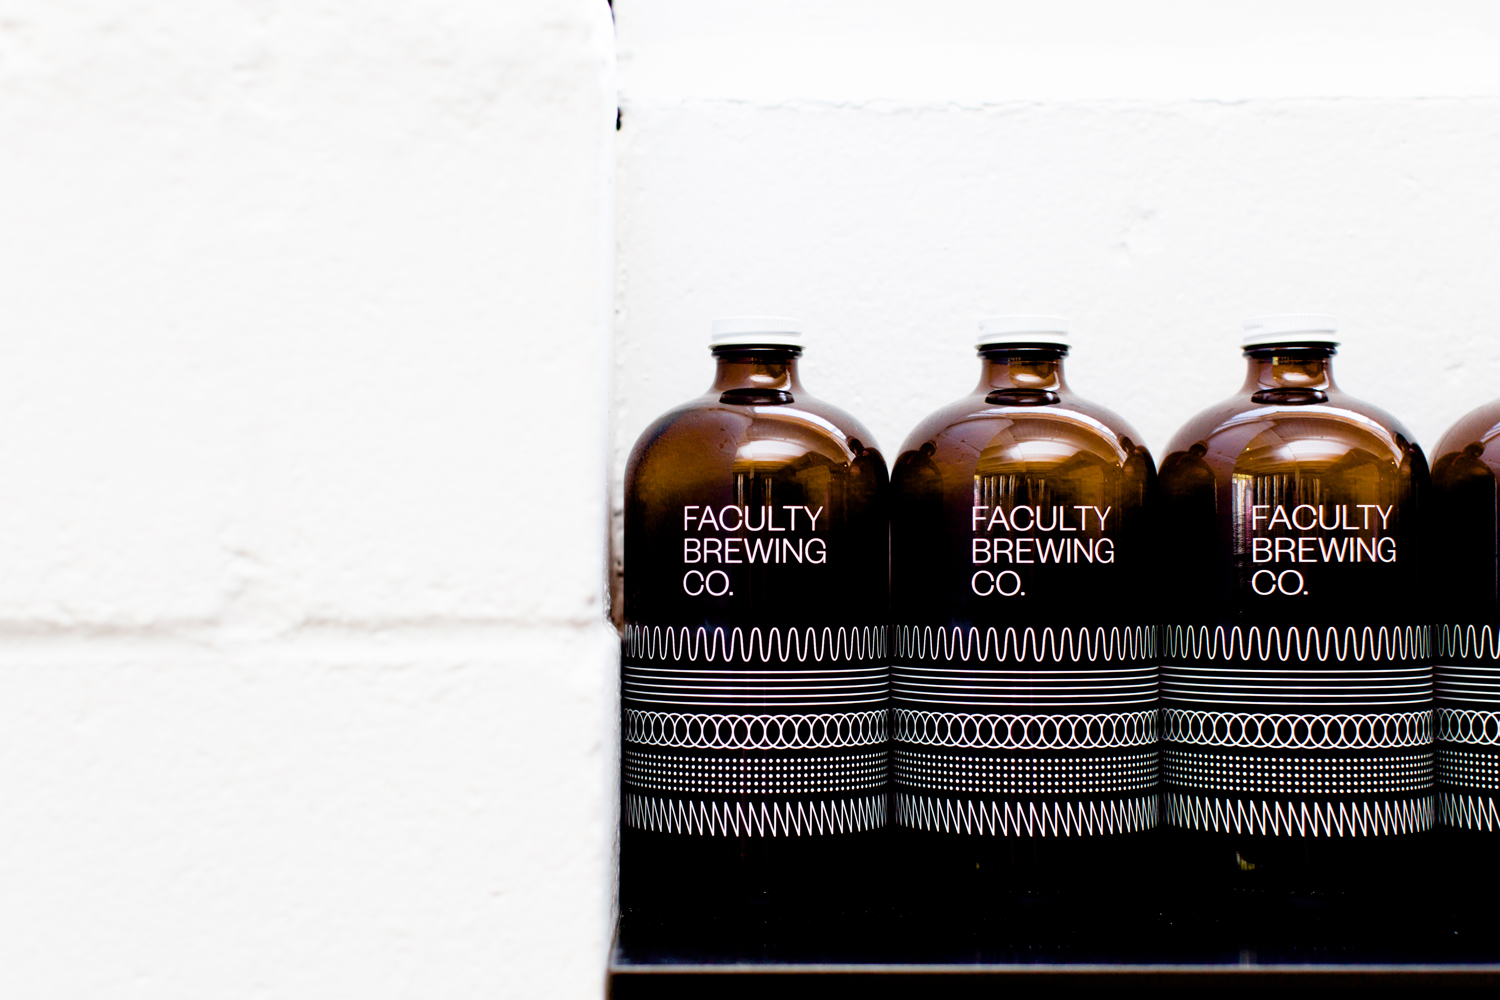 Logotype and screen printed growlers by Canadian graphic design studio Post Projects for Faculty Brewing Co.